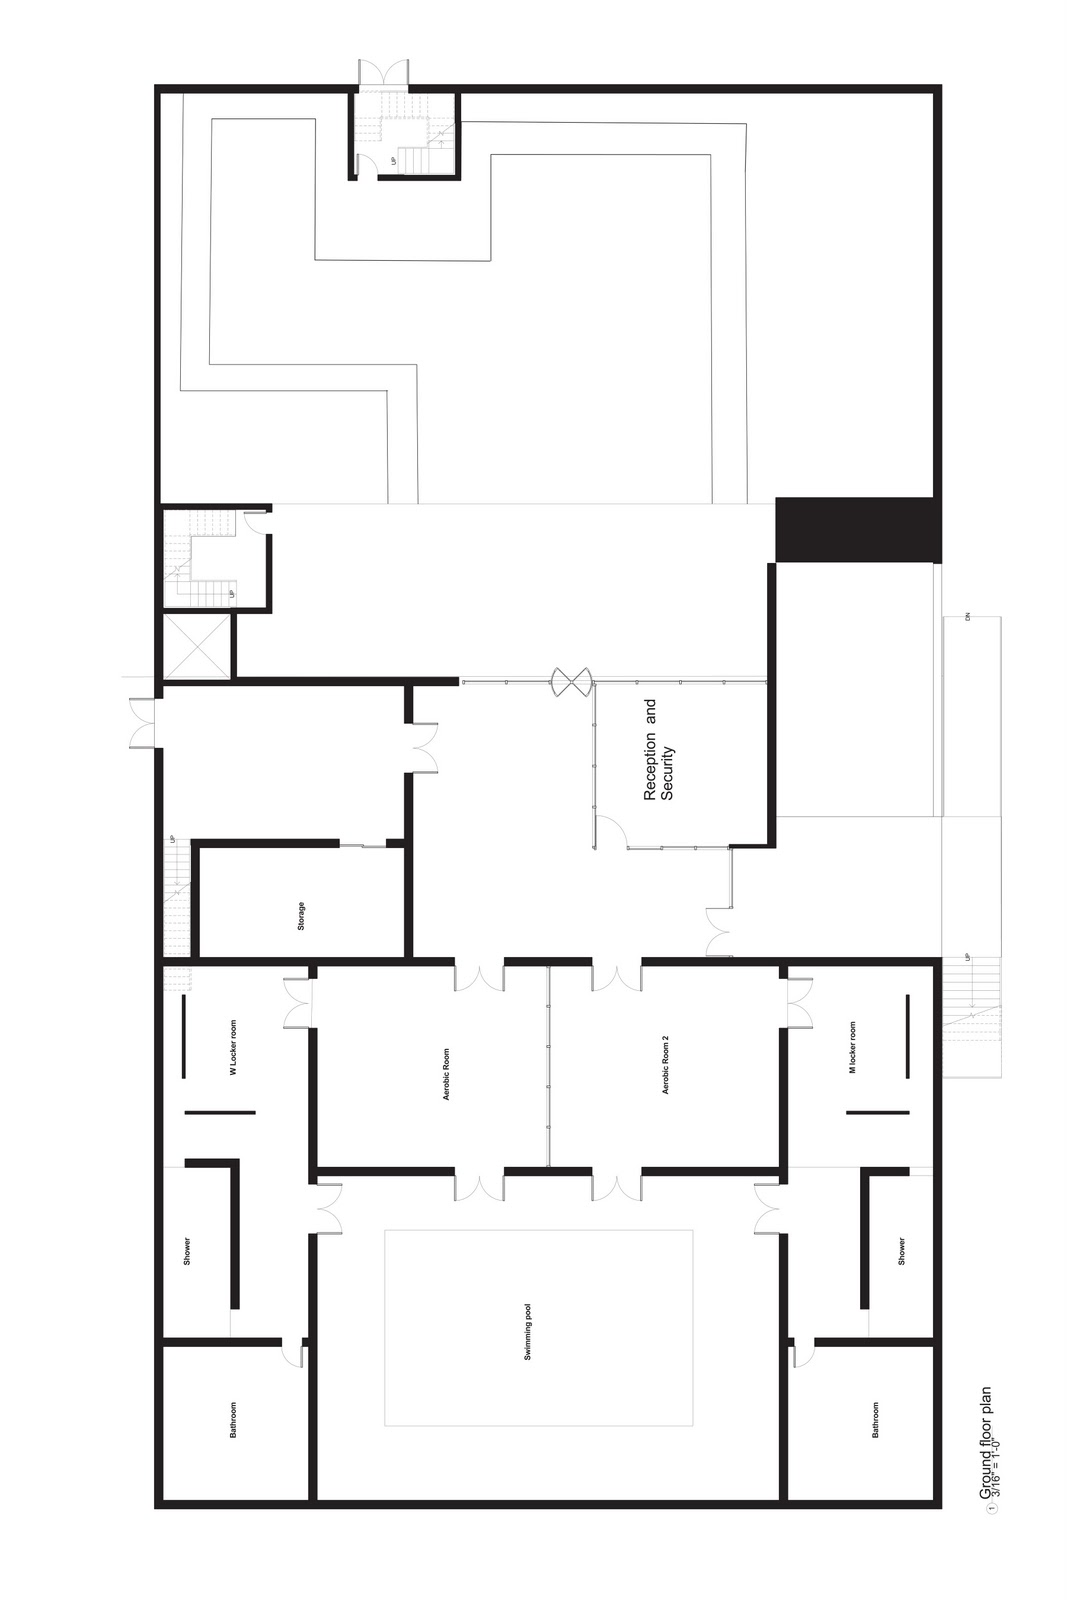 Arch 3611 theoretical design fire station floor plan and secitons for Fire station floor plans design